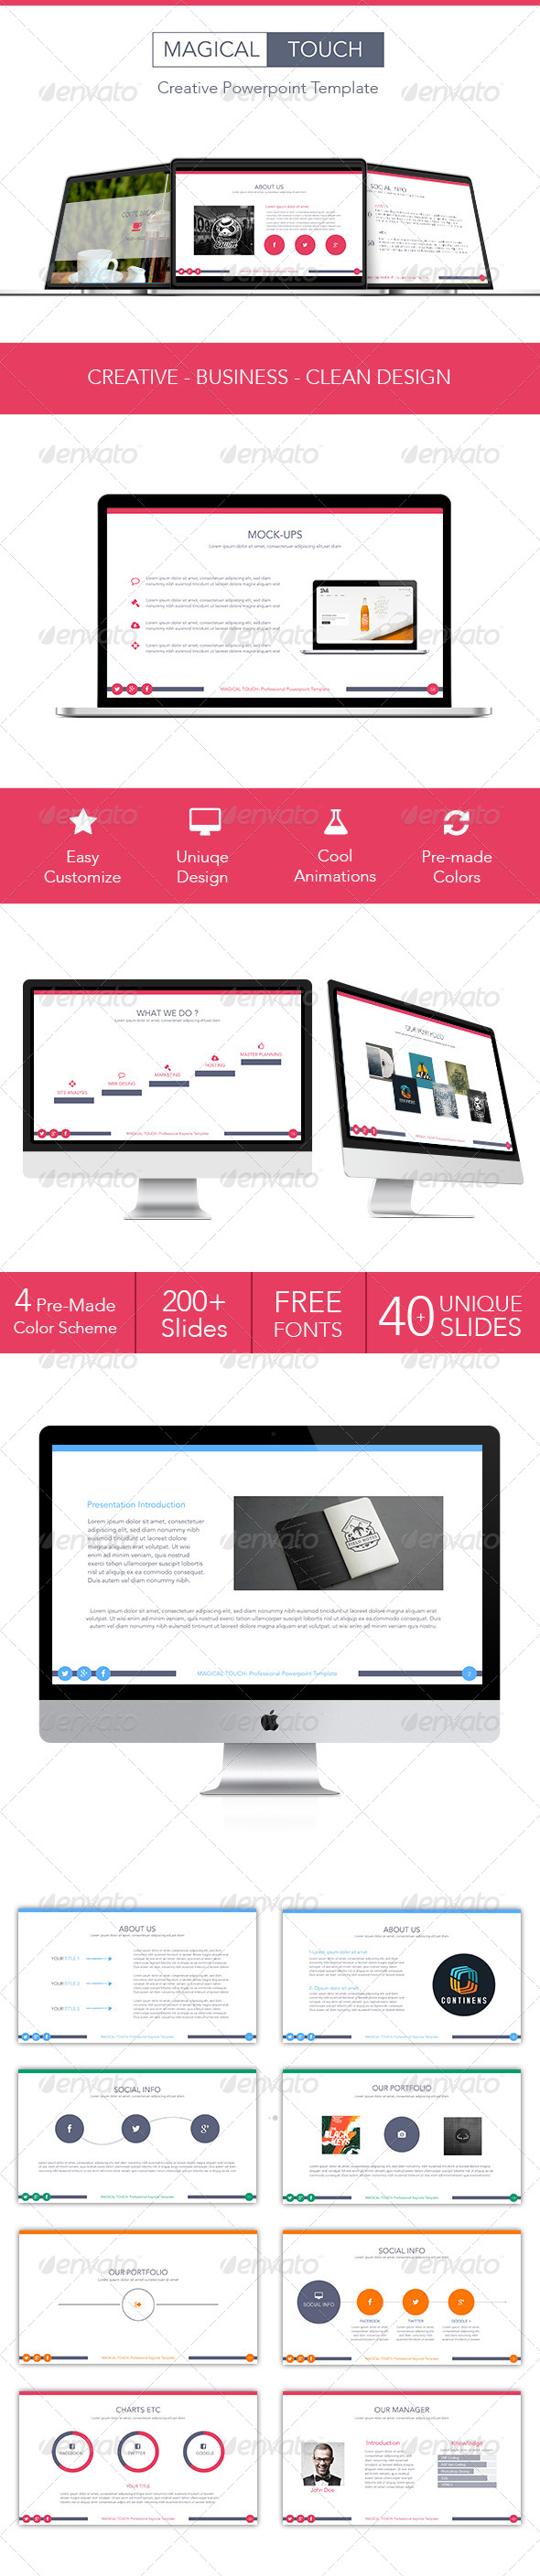 GraphicRiver Magical Touch Powerpoint Template 7789936